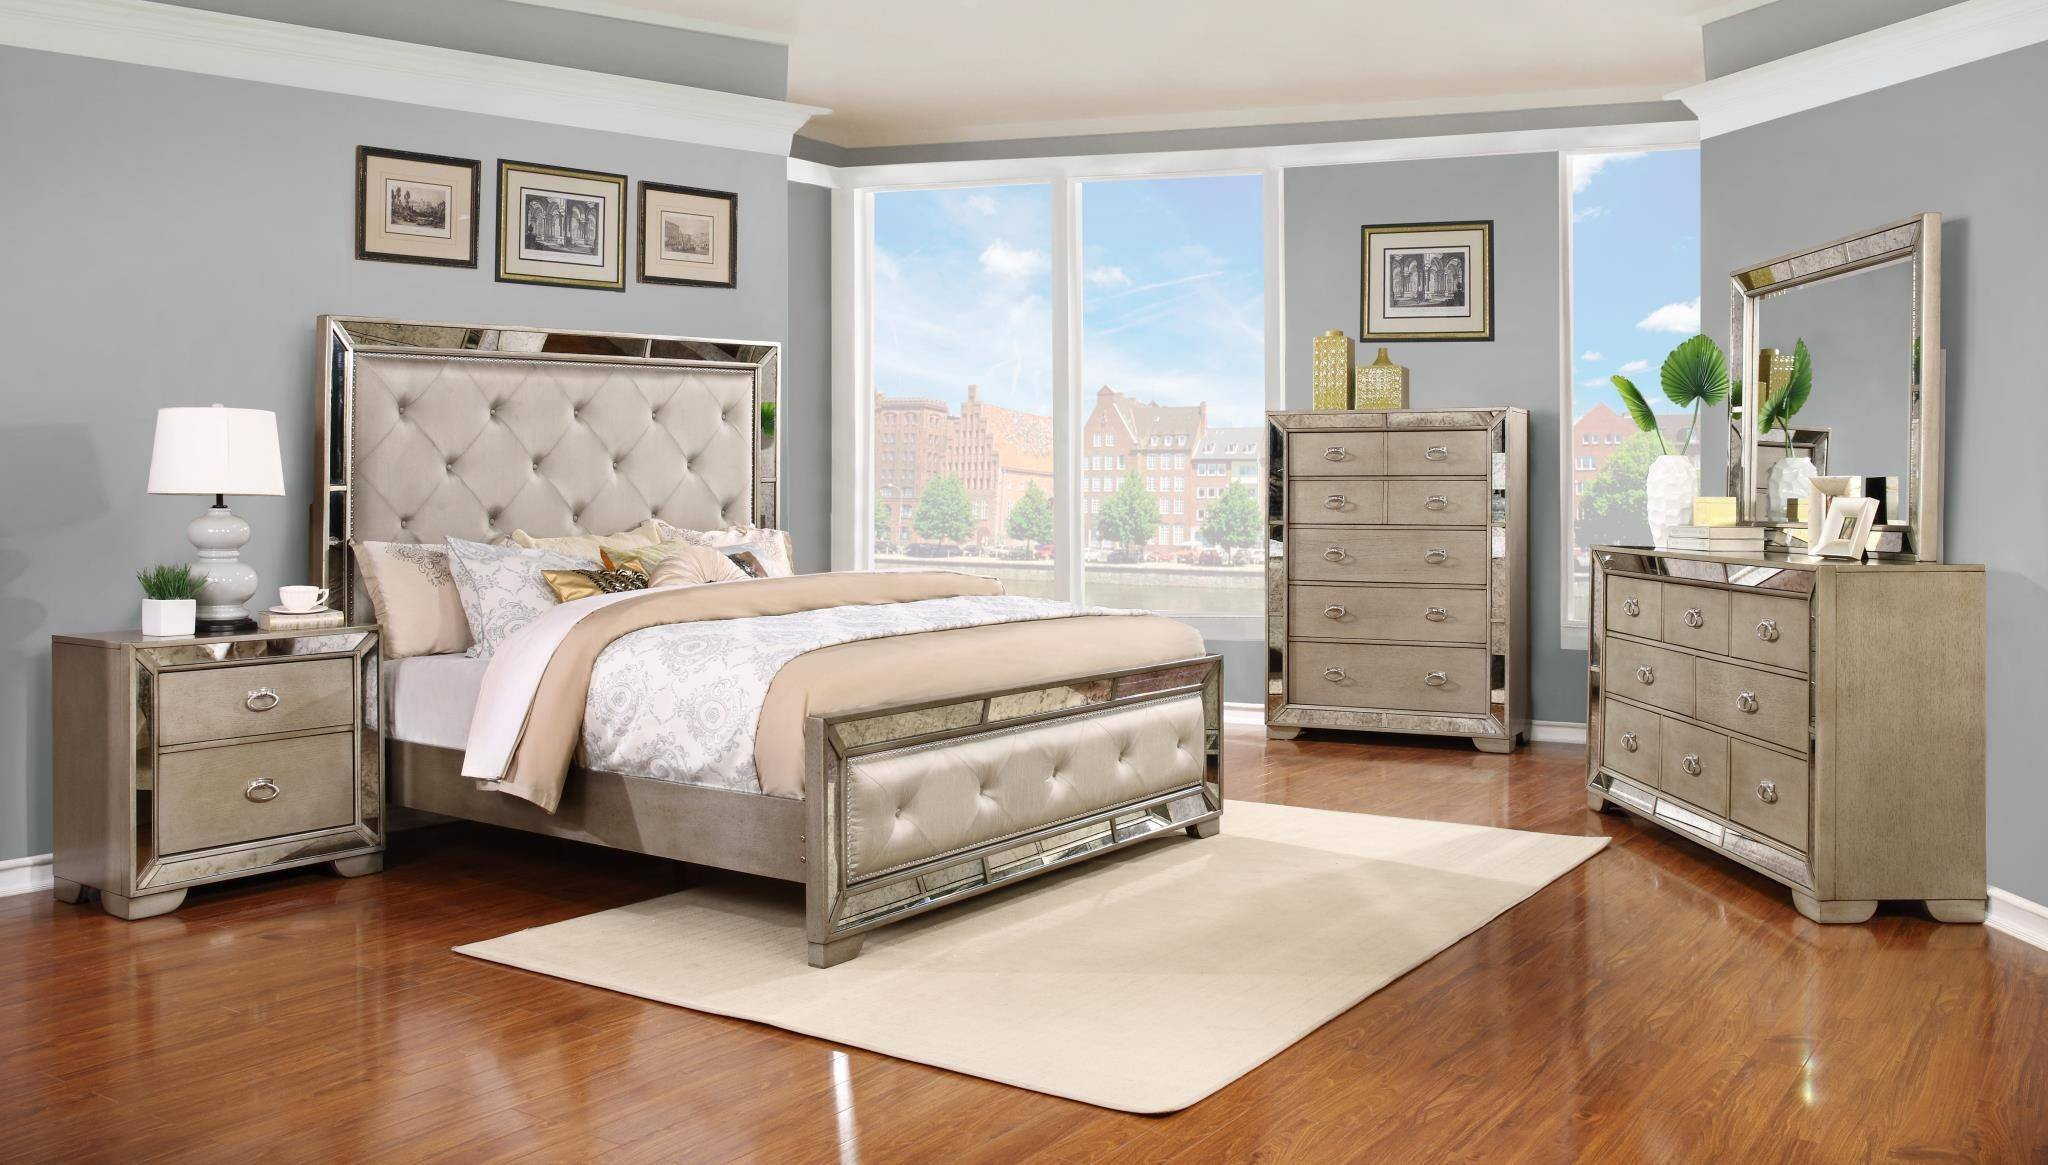 Queen Bedroom Set Cheap Best Of soflex Lilyanna Diamond Tufted Headboard Queen Bedroom Set